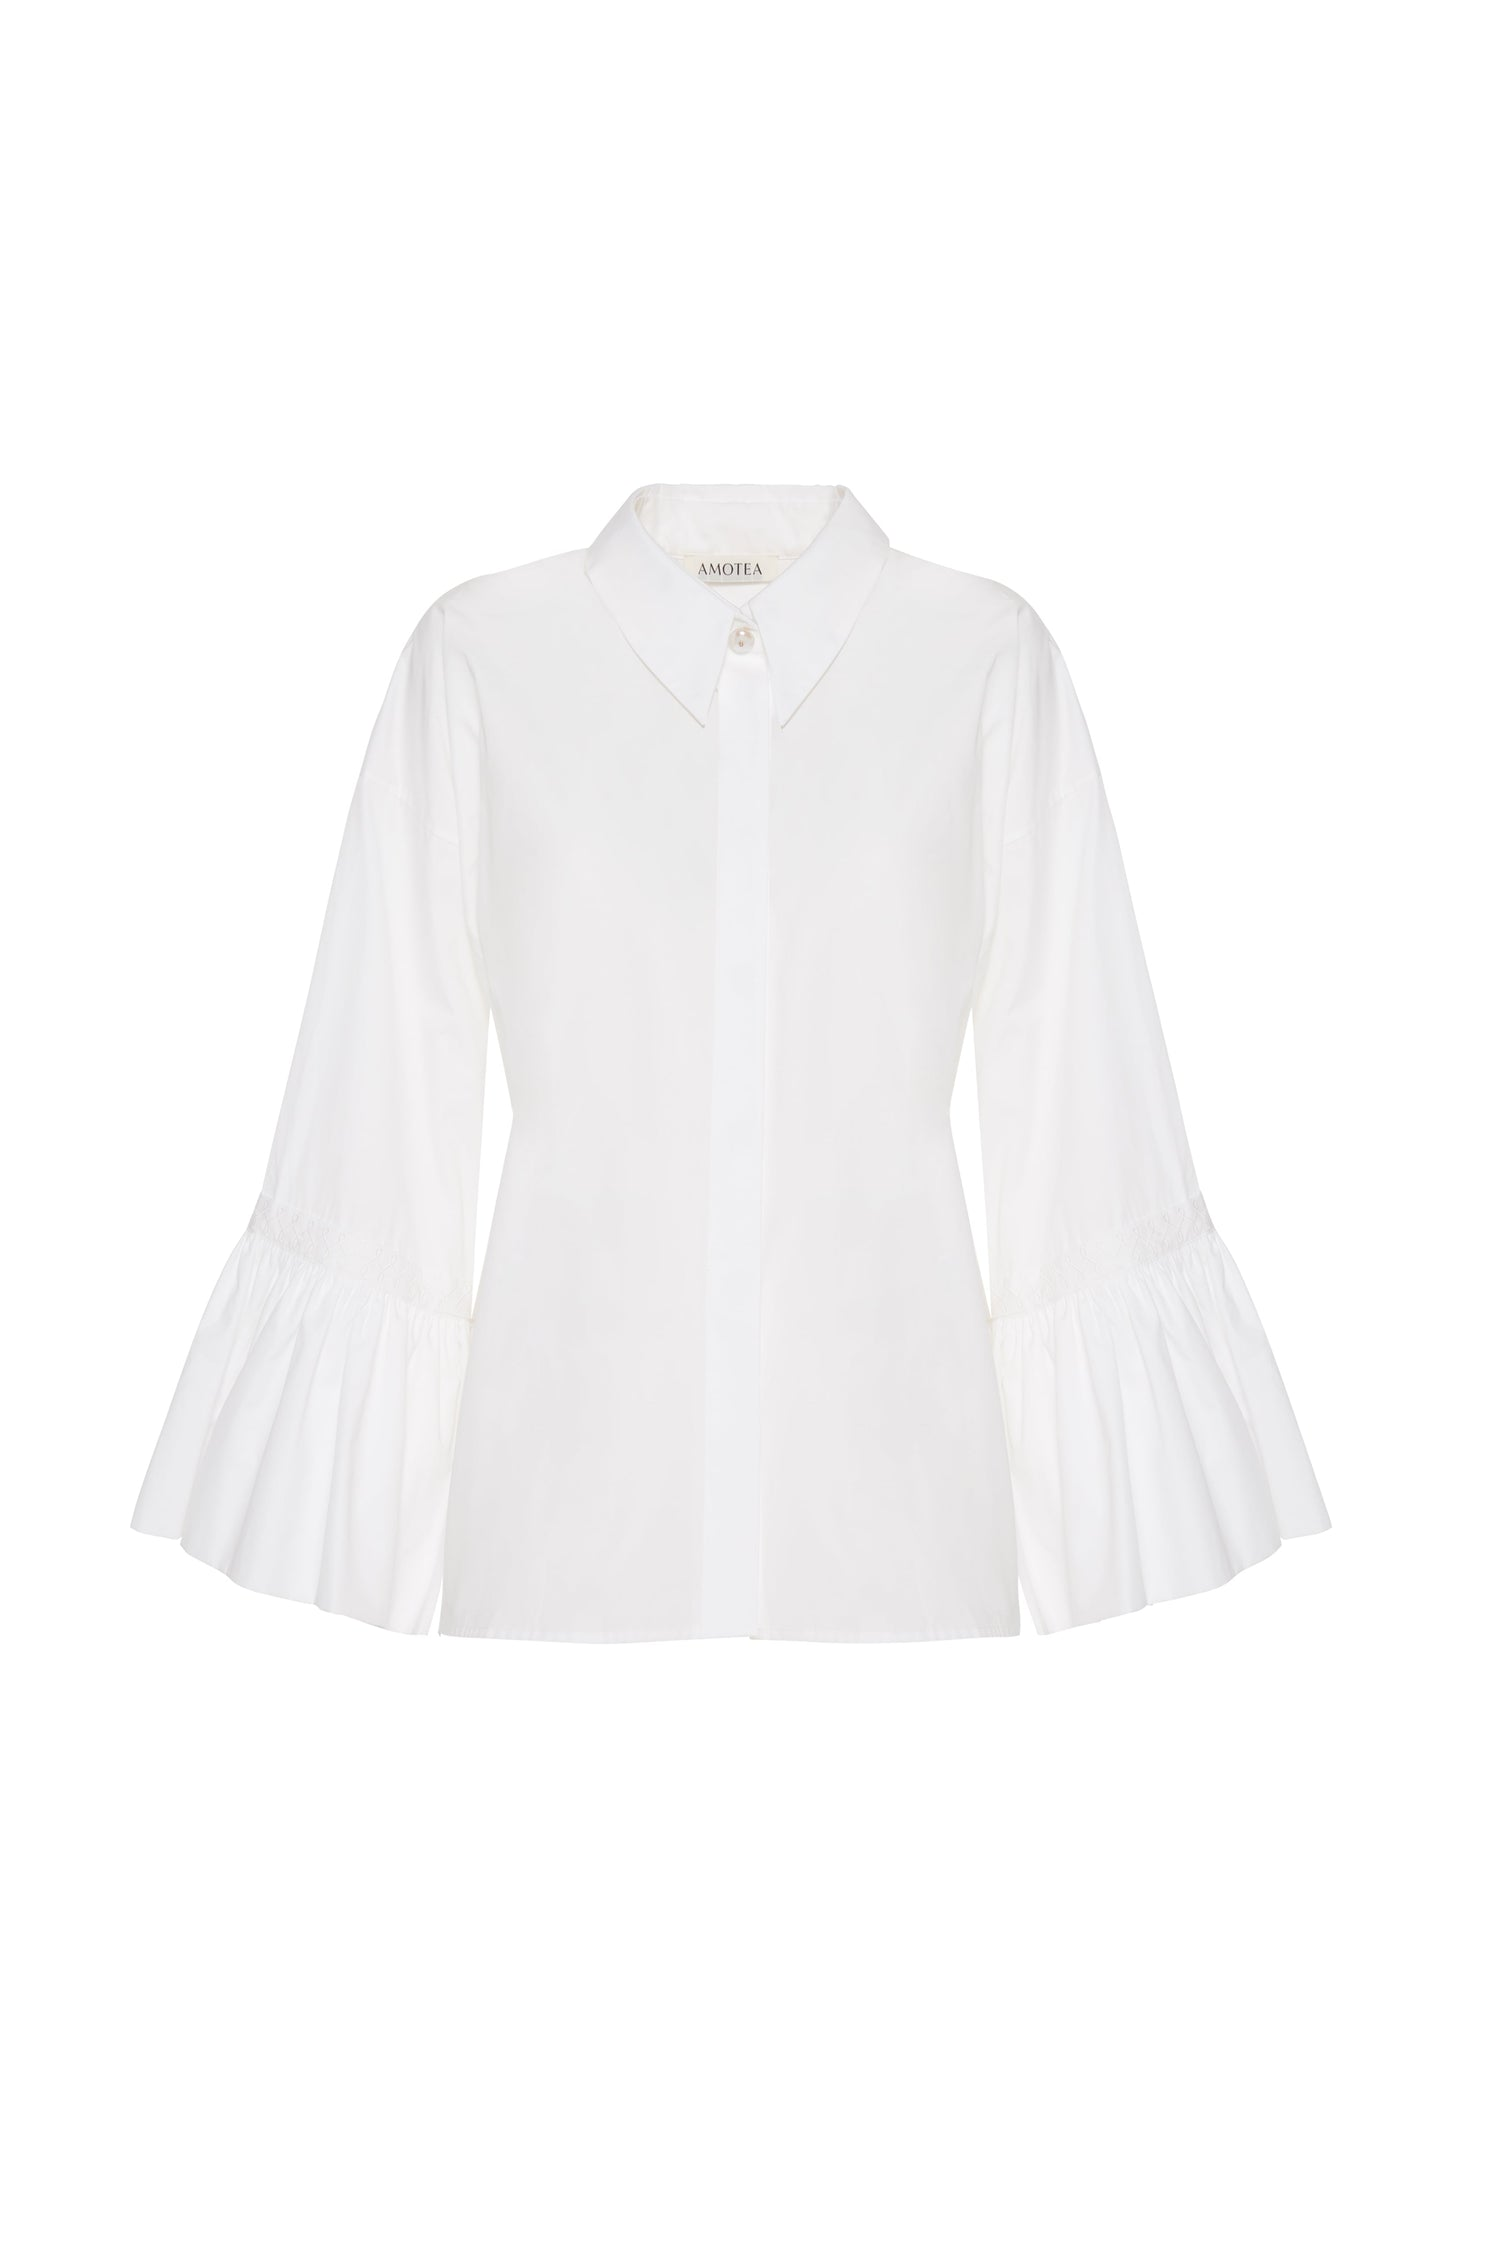 CLAUDIA SHIRT IN WHITE POPLIN